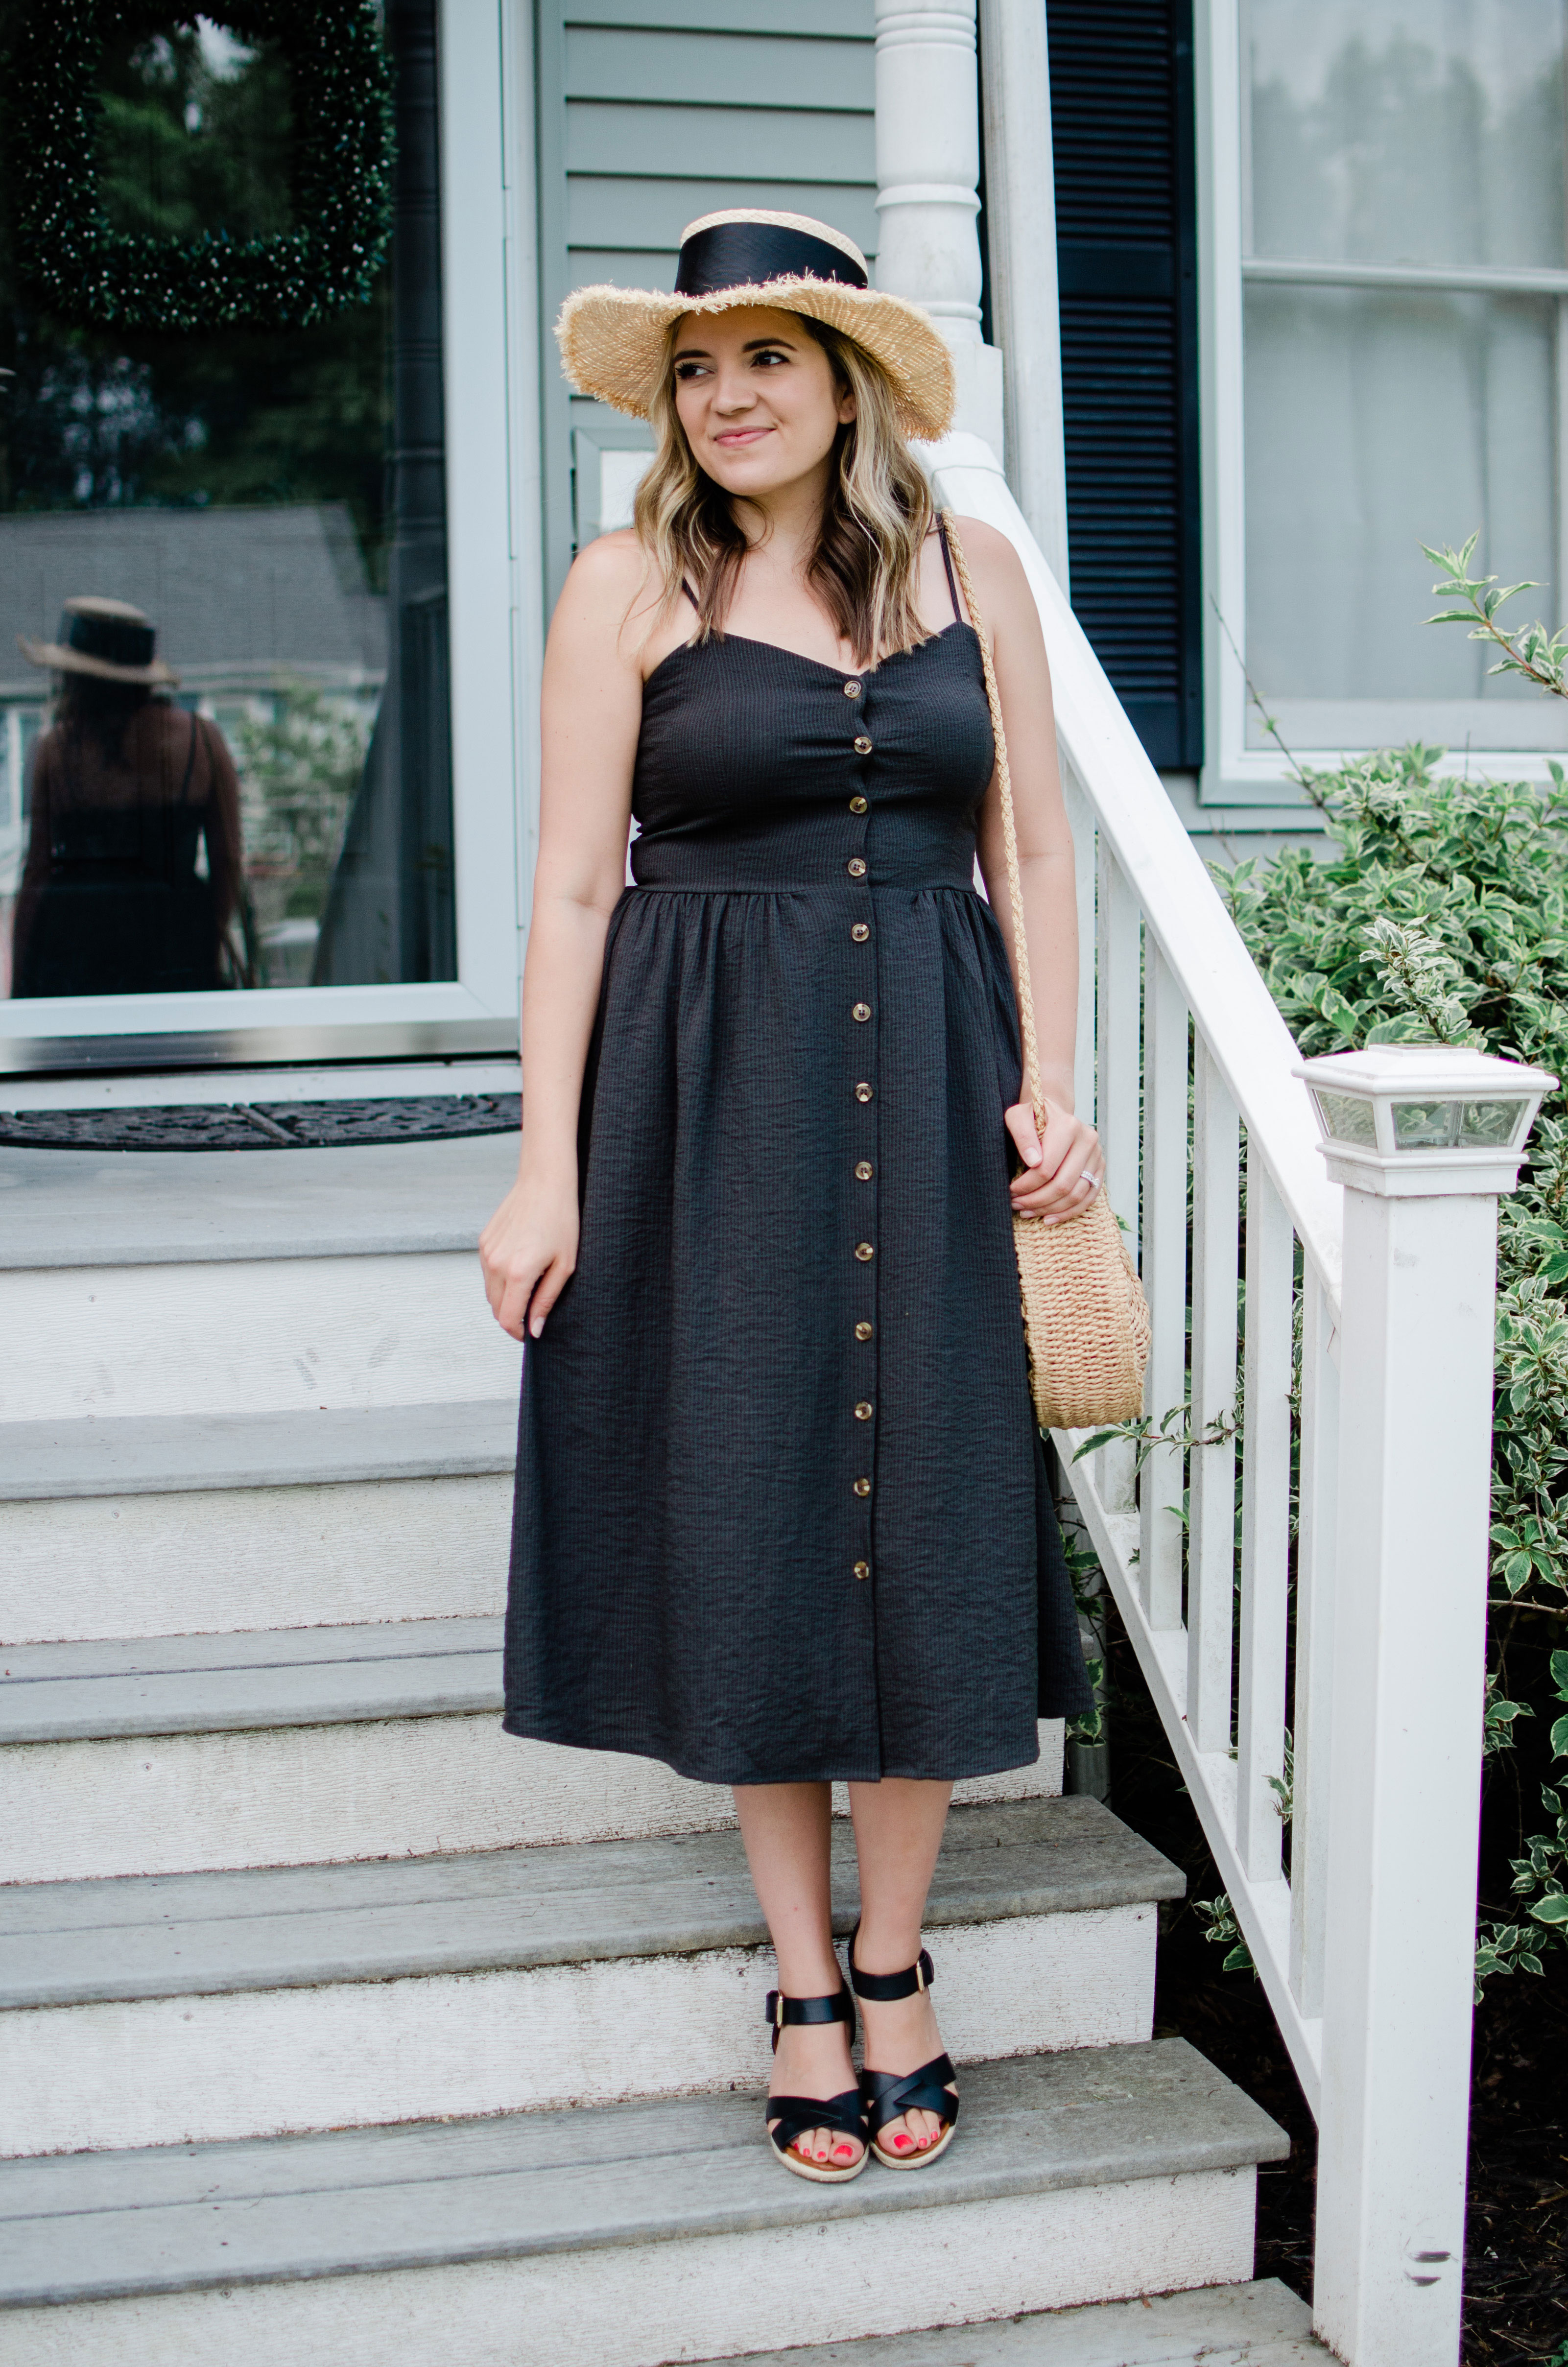 Virginia blogger, Lauren Dix, shares five sundress outfits for summer. She styles an affordable button-front dress from H&M five different ways.